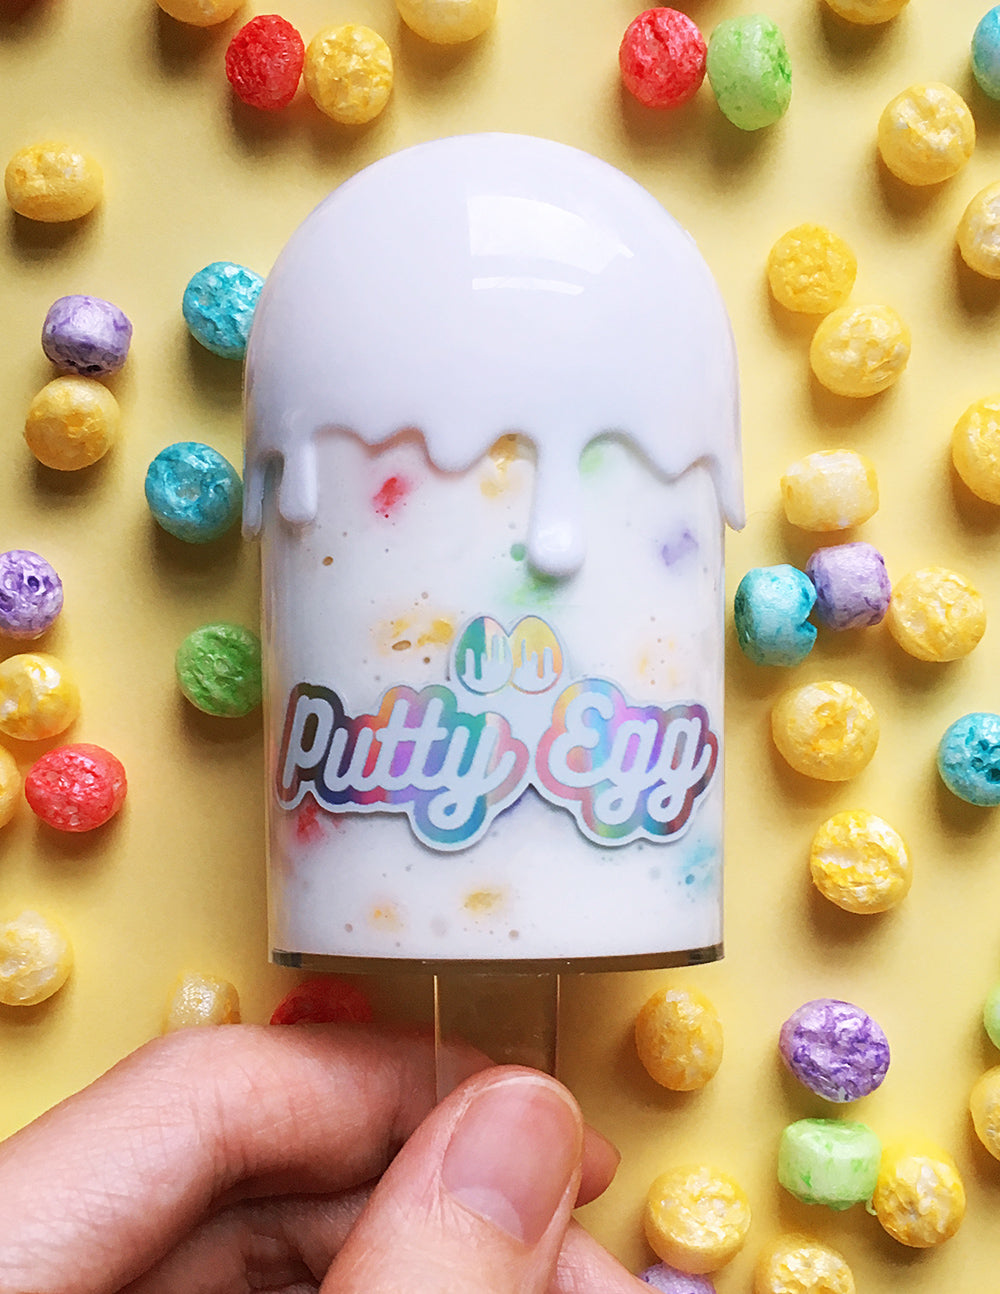 Capn crunch berries cereal putty egg capn crunch berries cereal ccuart Image collections